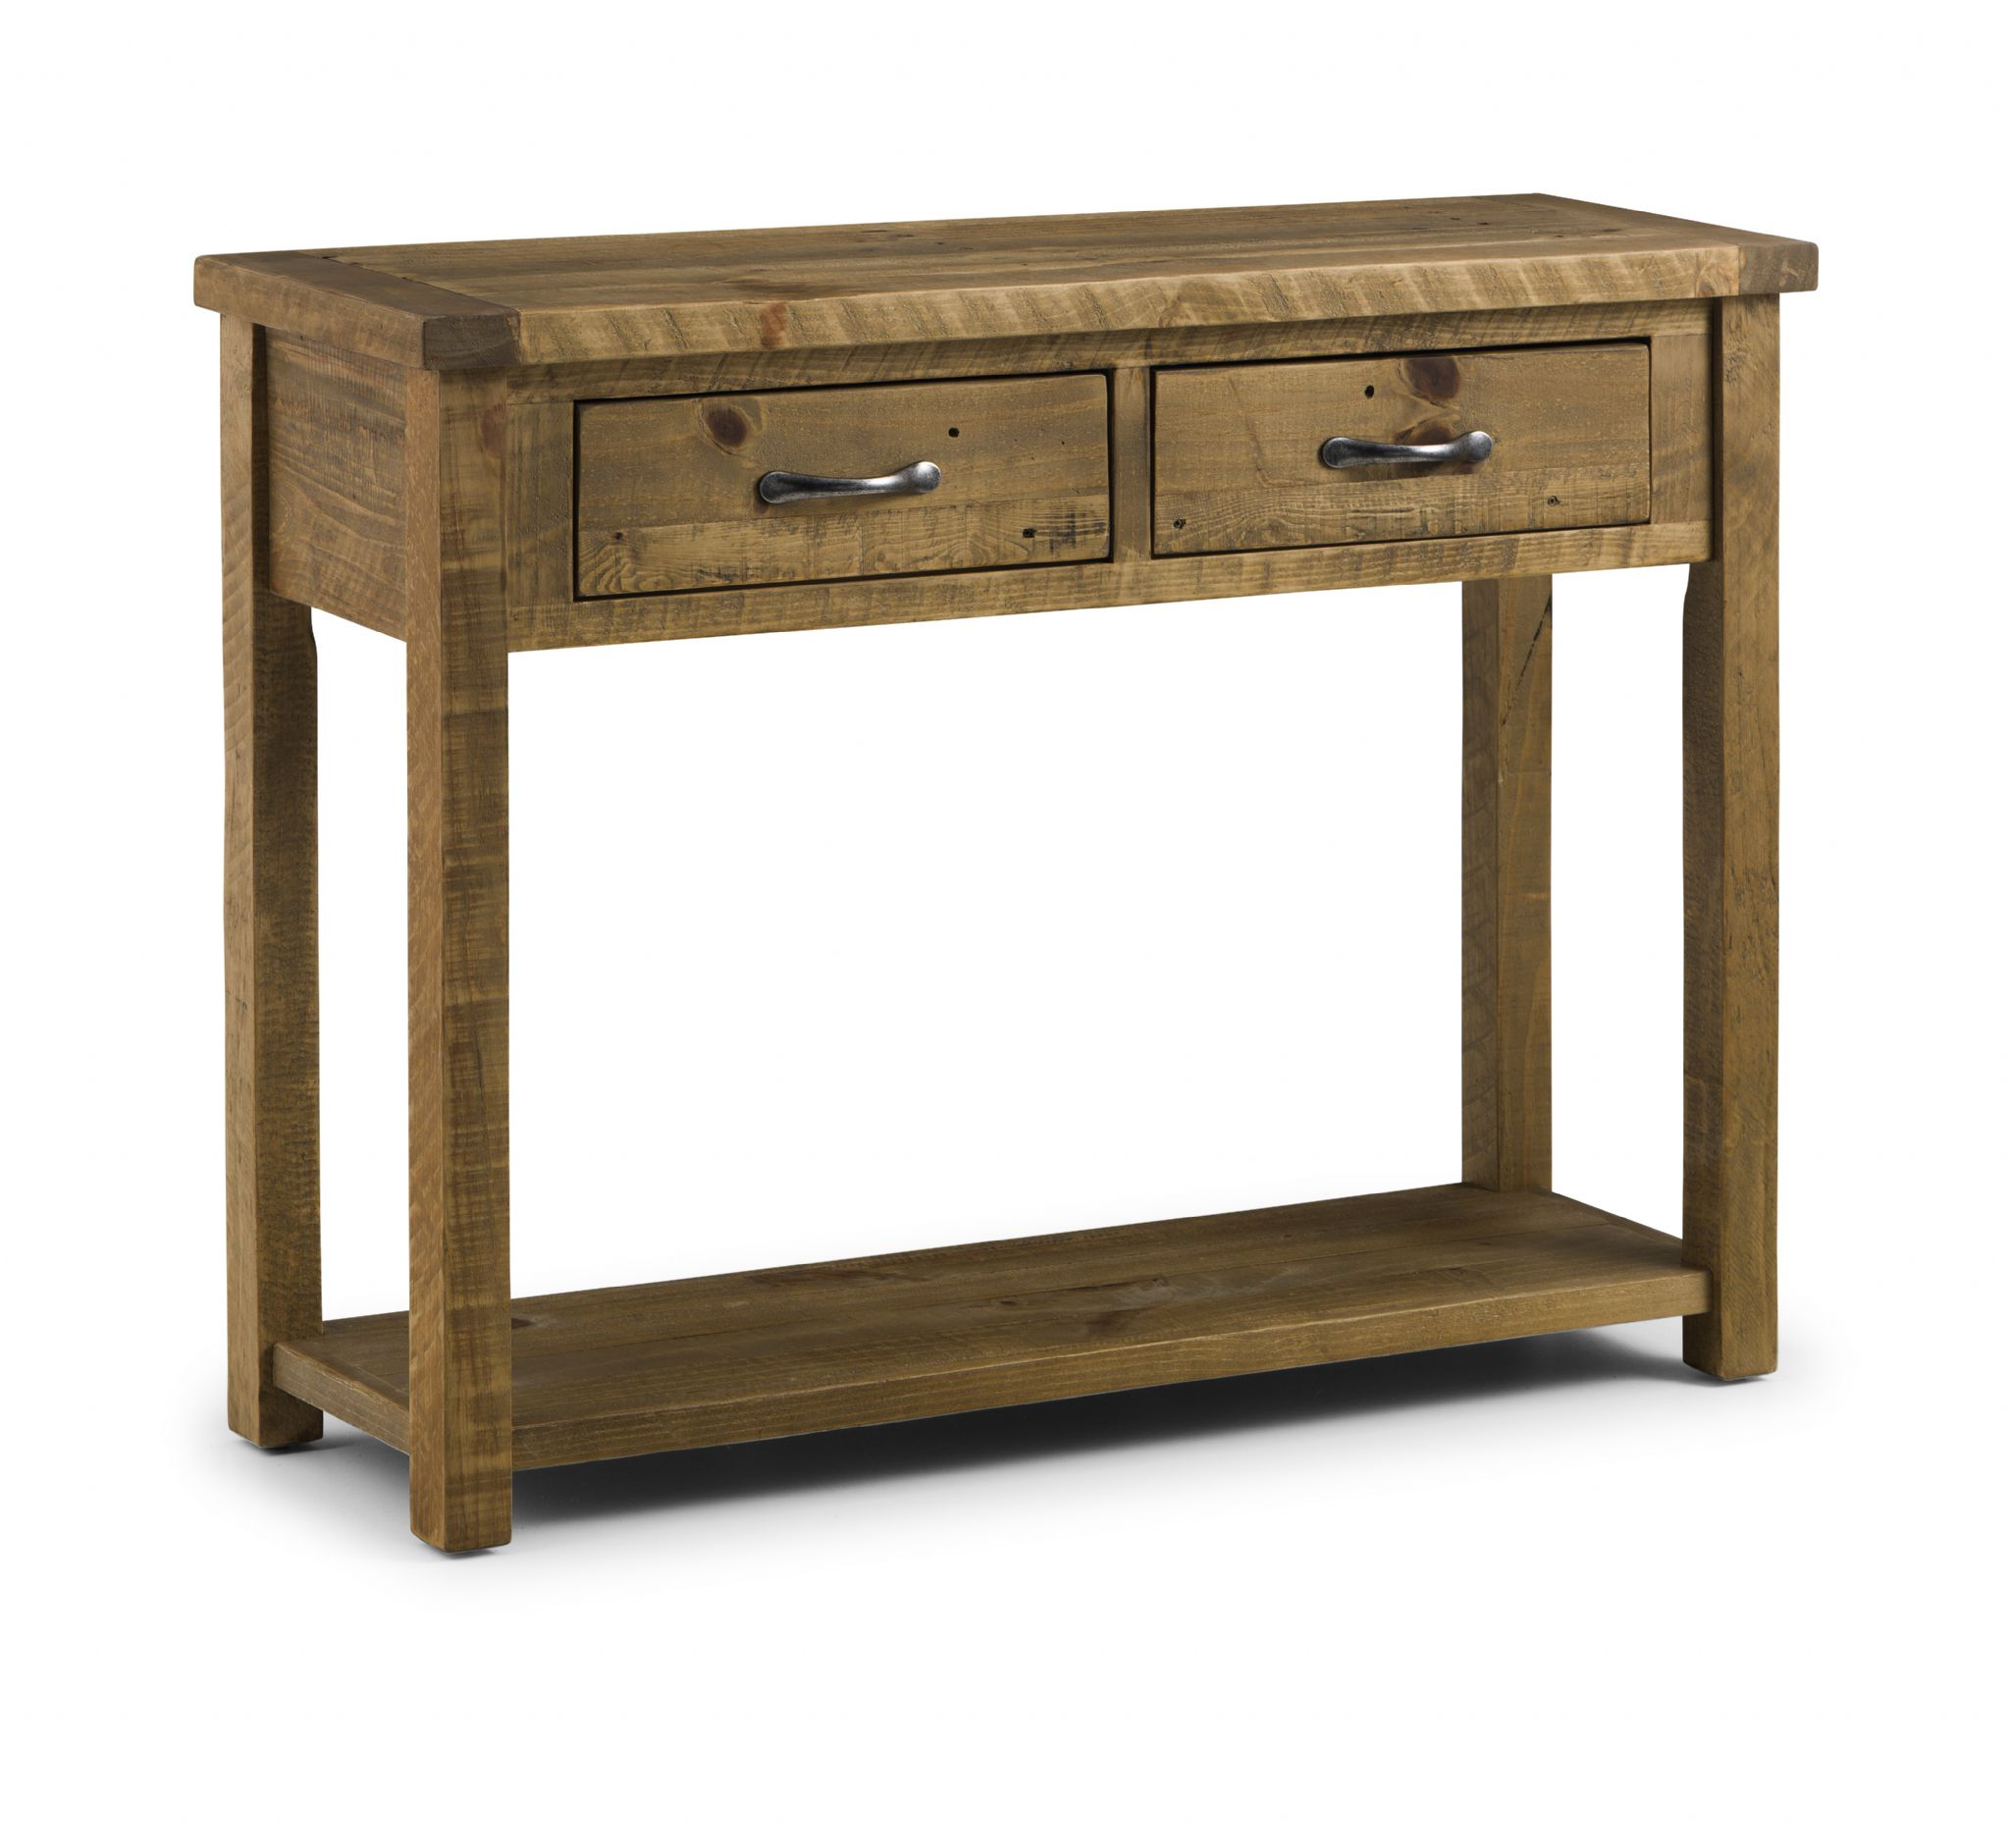 Cordoba solid pine console table with drawers jb